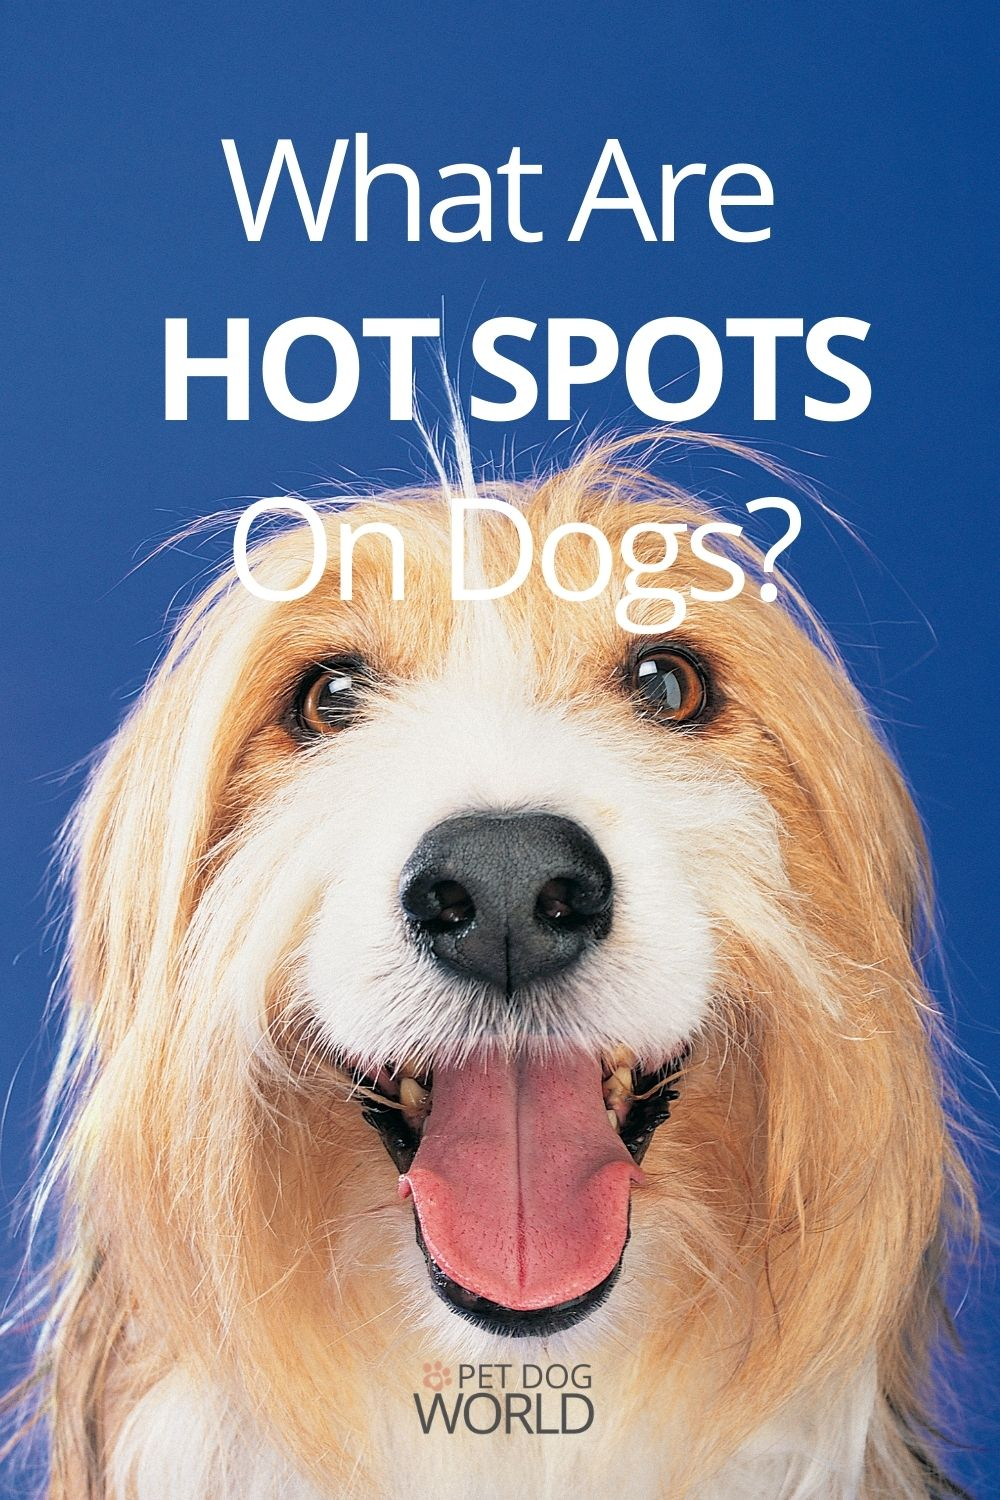 What are hot spots on dogs?